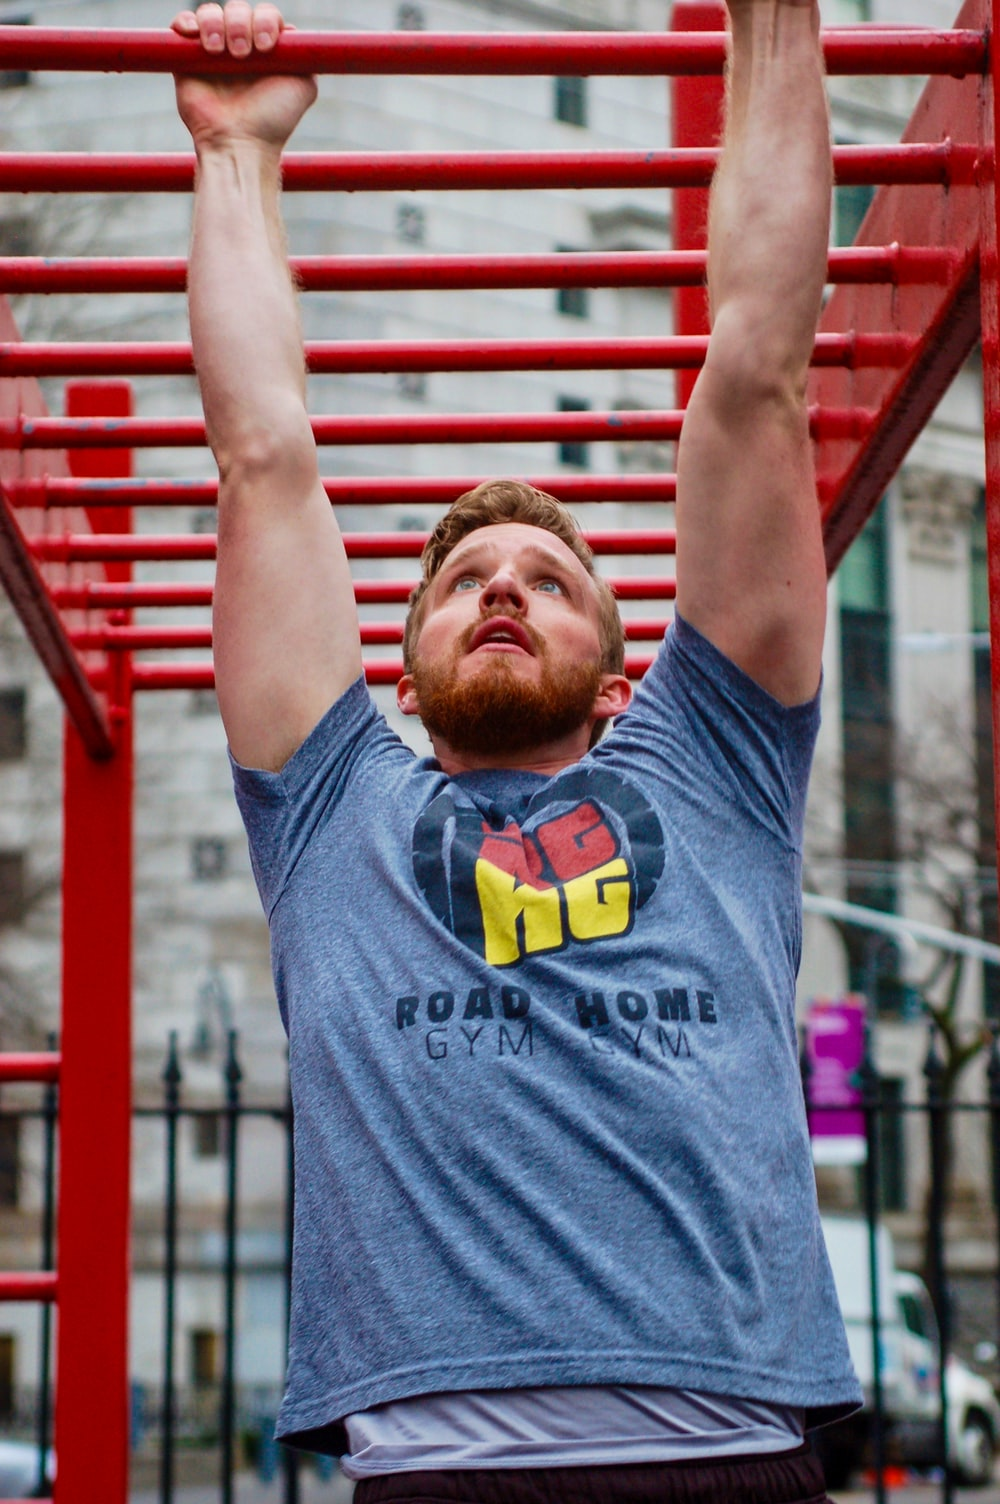 man in gray crew neck t-shirt standing and raising his hands